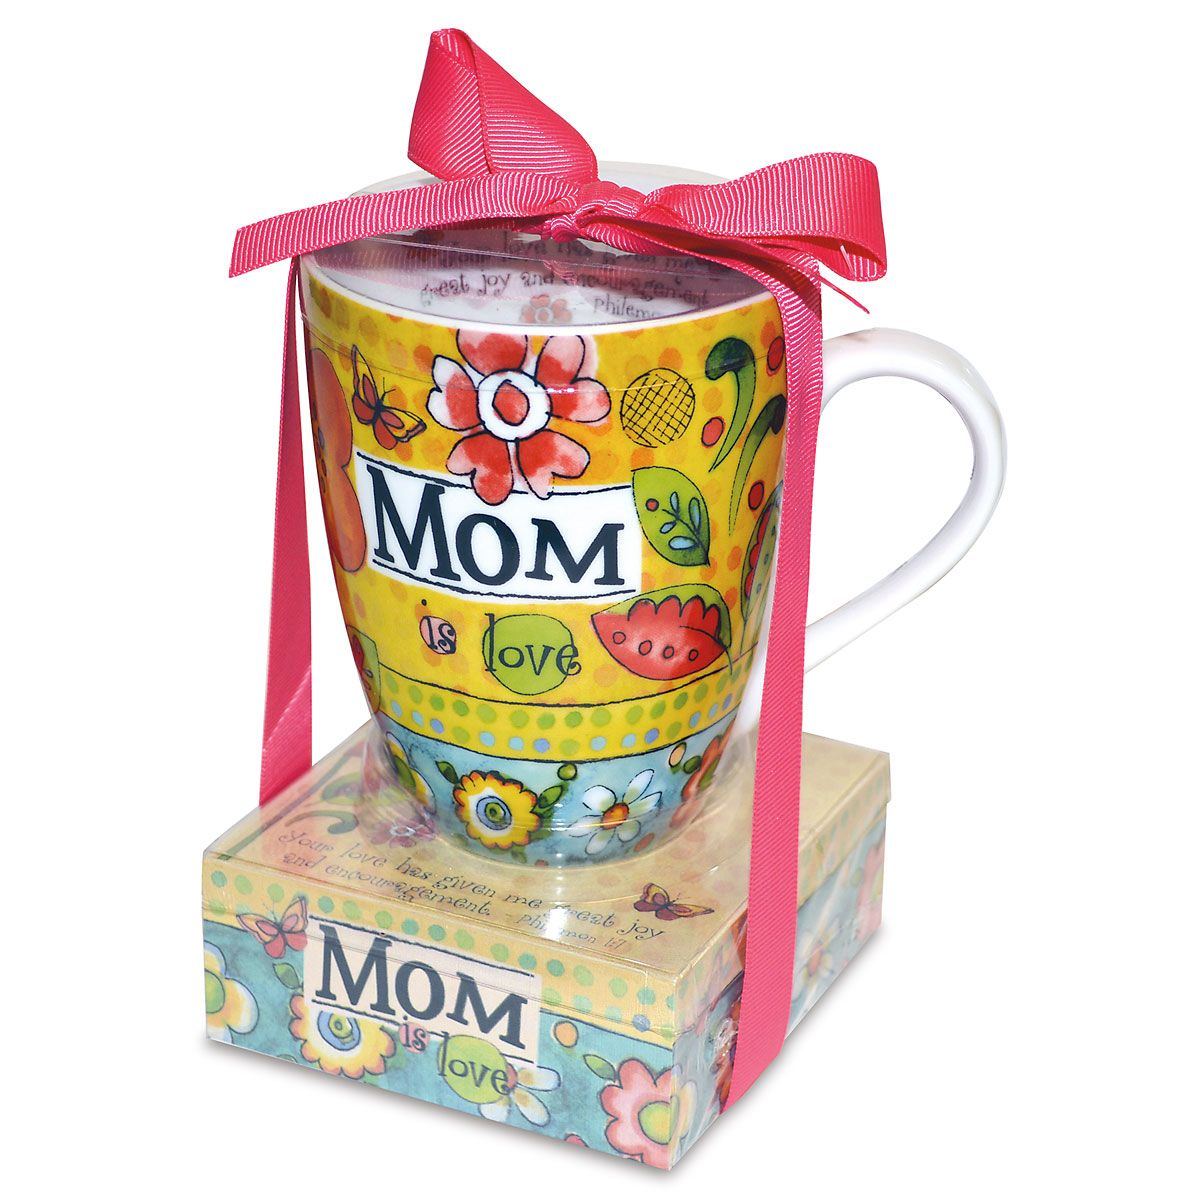 Mom is Love Mug and Memo Pad Gift Set